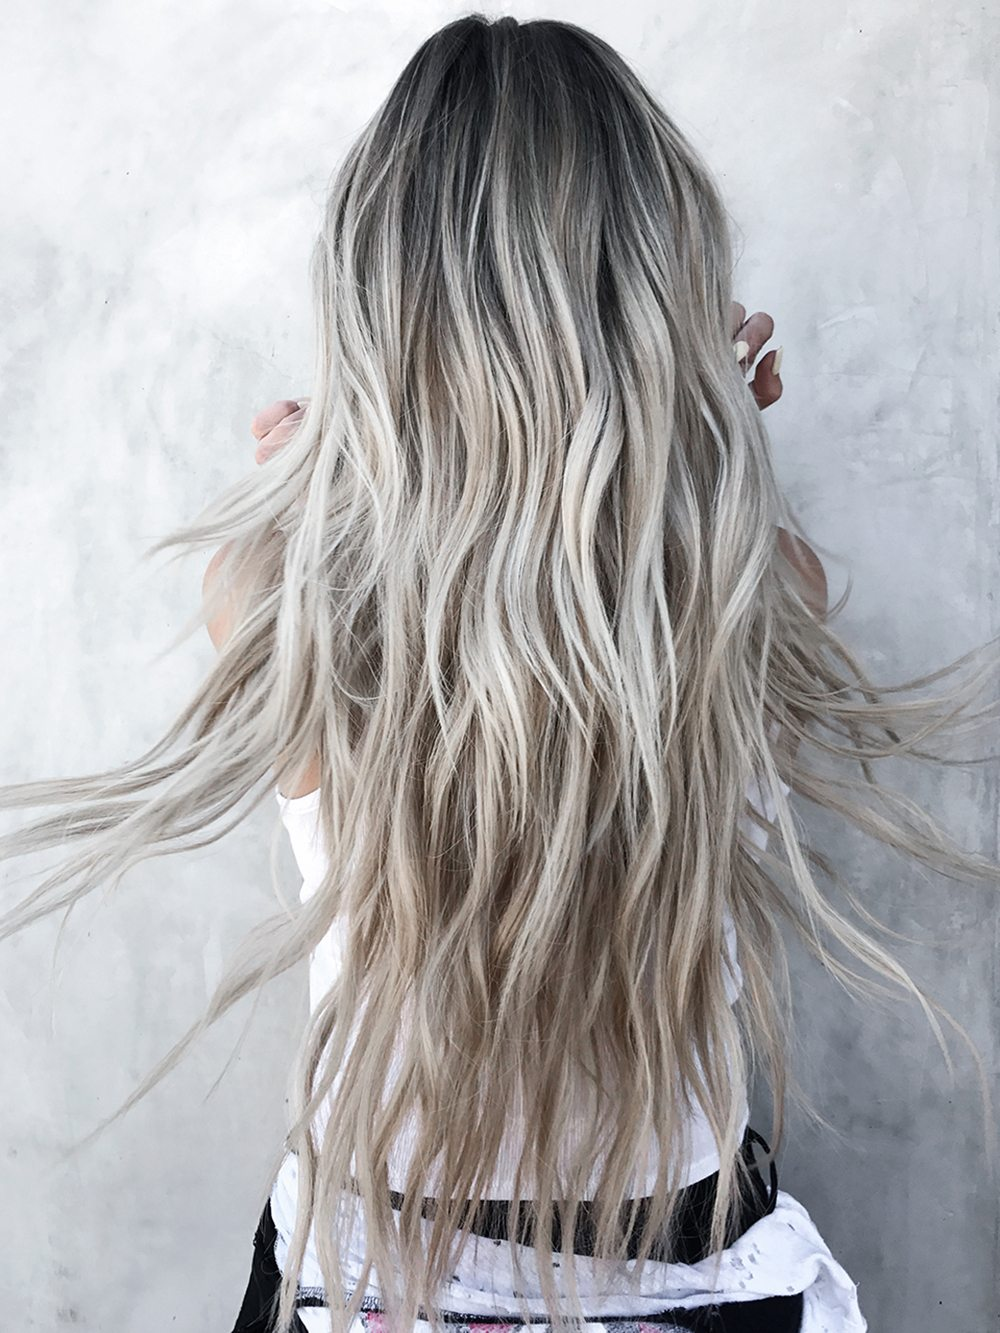 HAIR-CARE-TIPS-9b-by-the-skinny-confidential